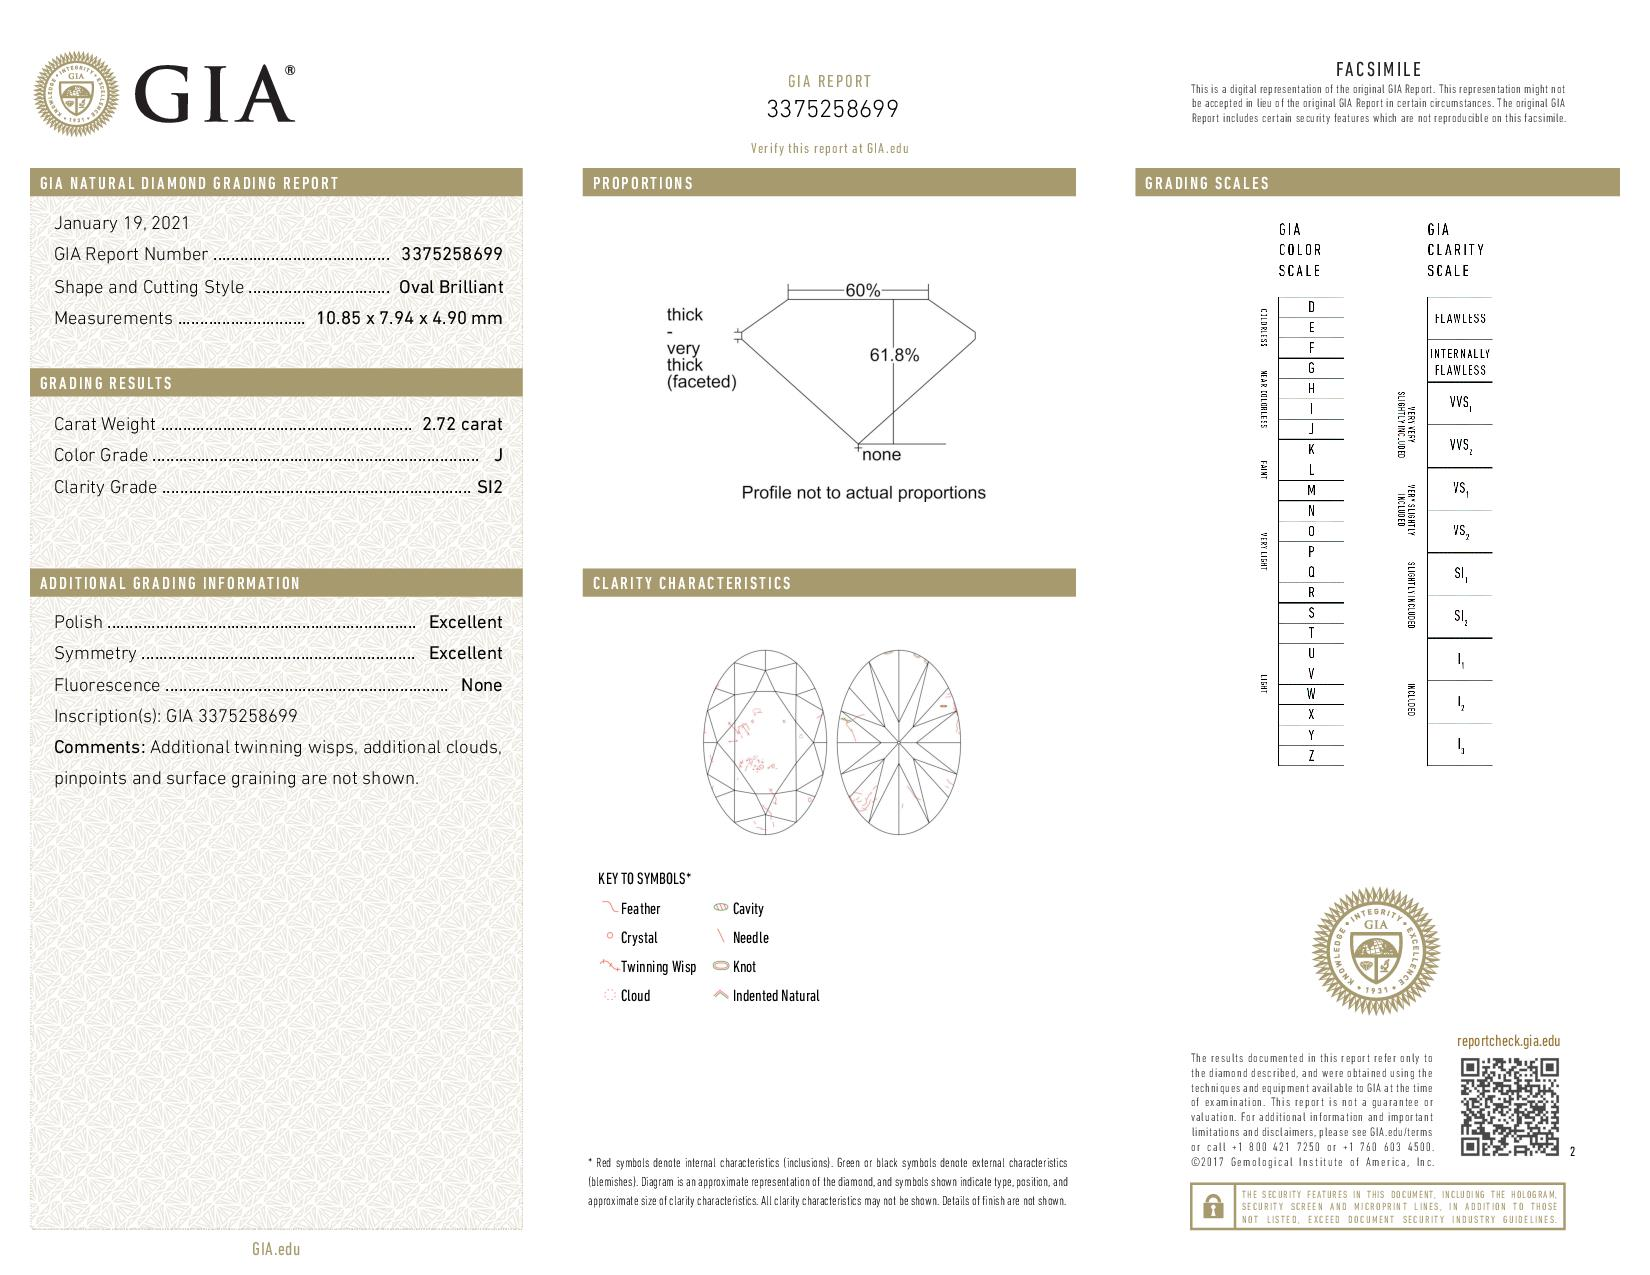 This is a 2.72 carat oval shape, J color, SI2 clarity natural diamond accompanied by a GIA grading report.